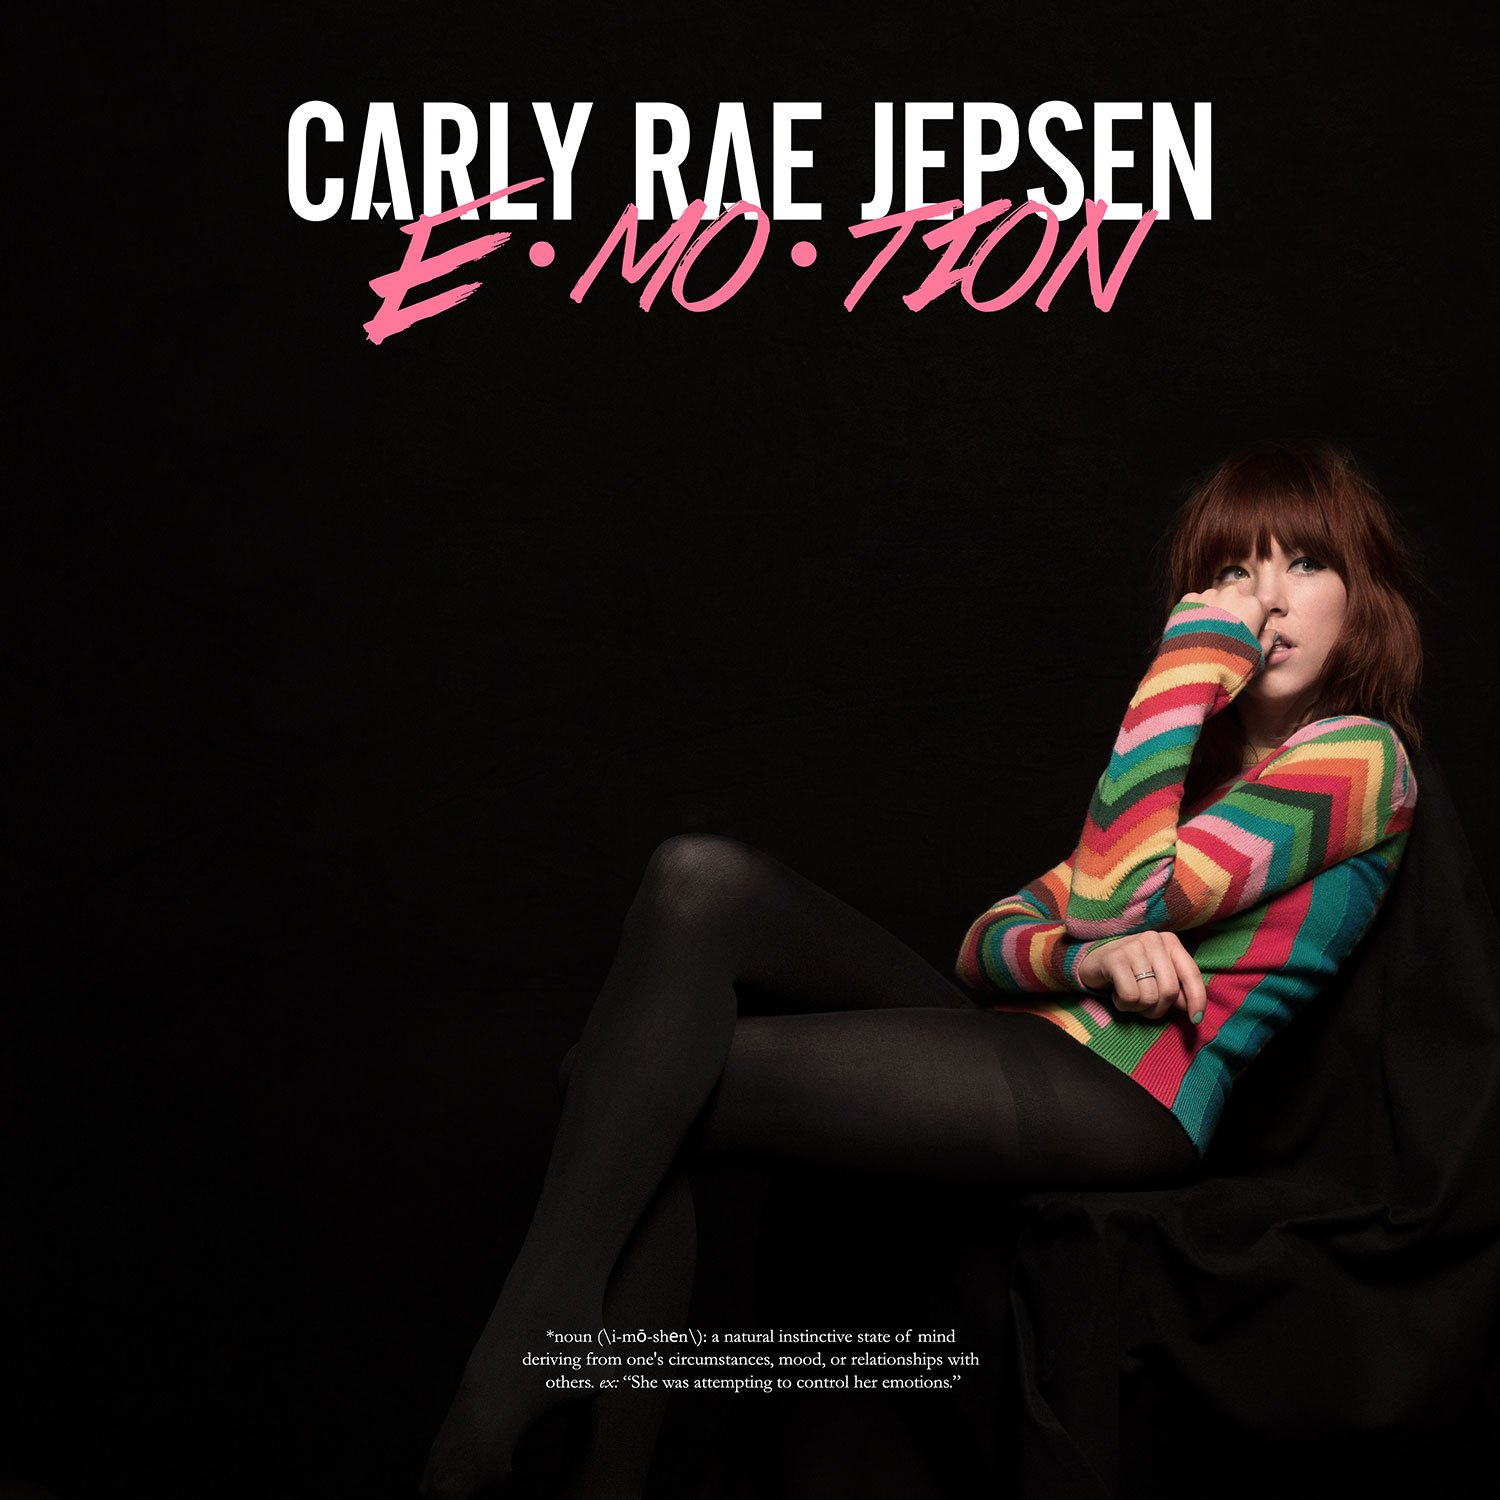 warming up for tonight meme valentines day - Valentine s Day with Carly Rae Jepsen NeoGAF